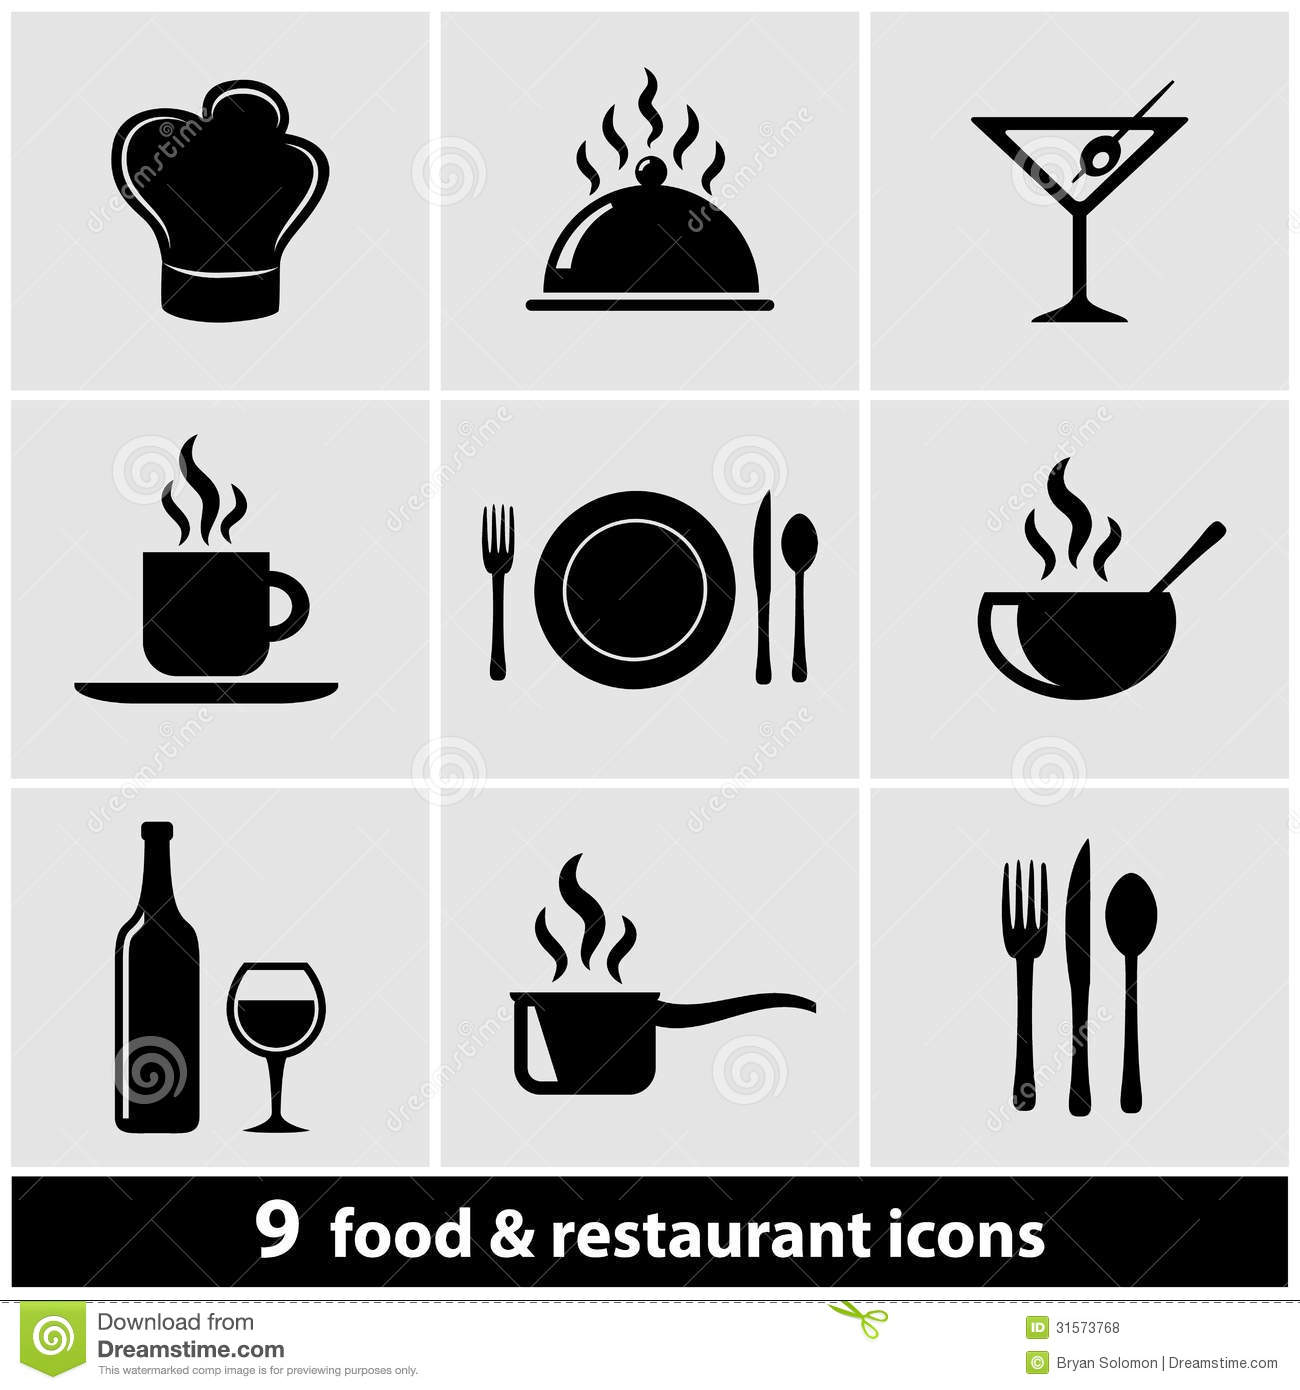 restaurant clipart download - photo #22